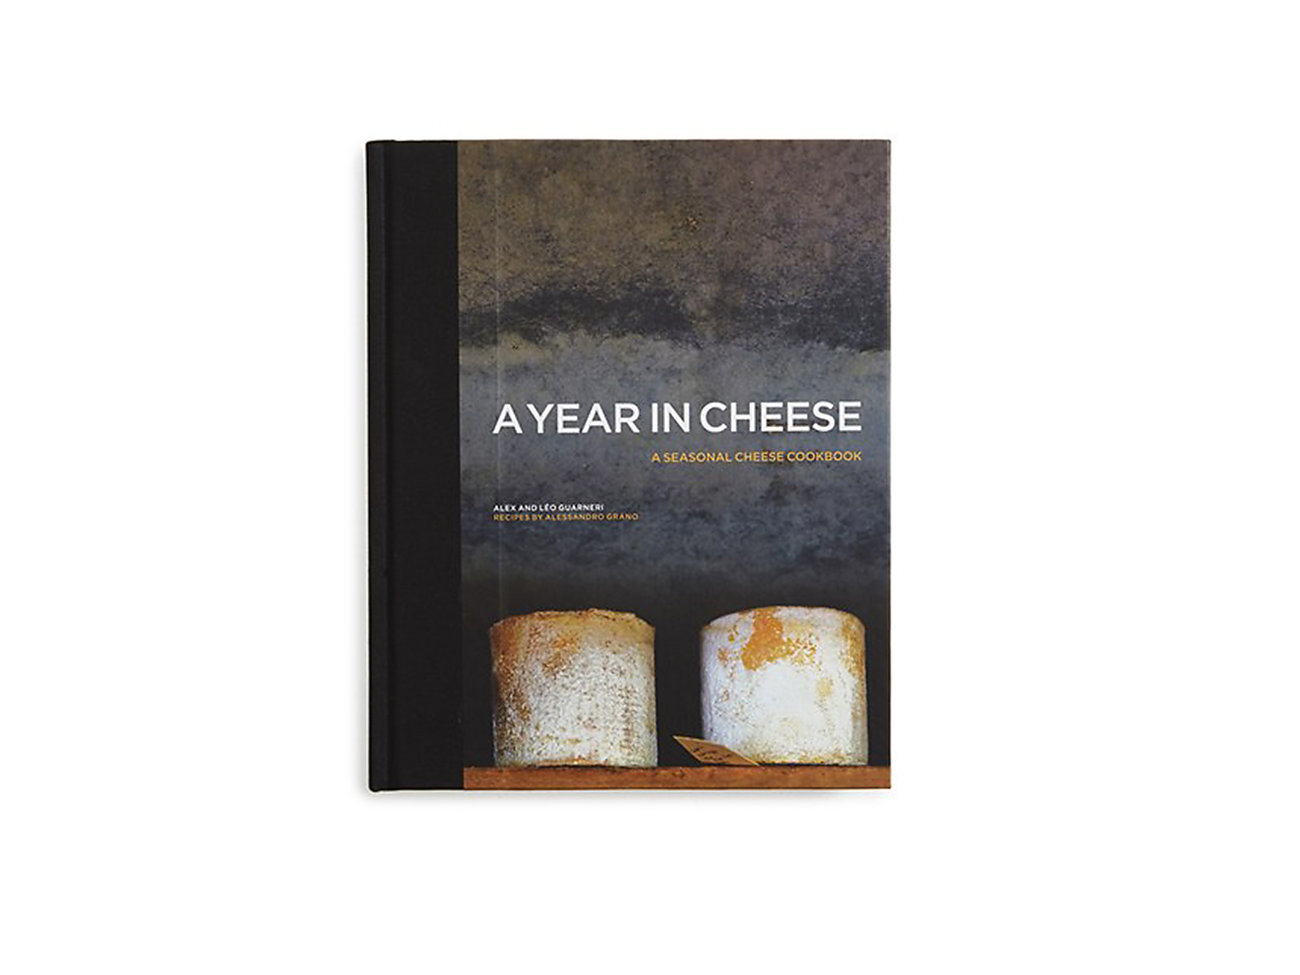 A-year-in-cheese-book-gg115.jpg